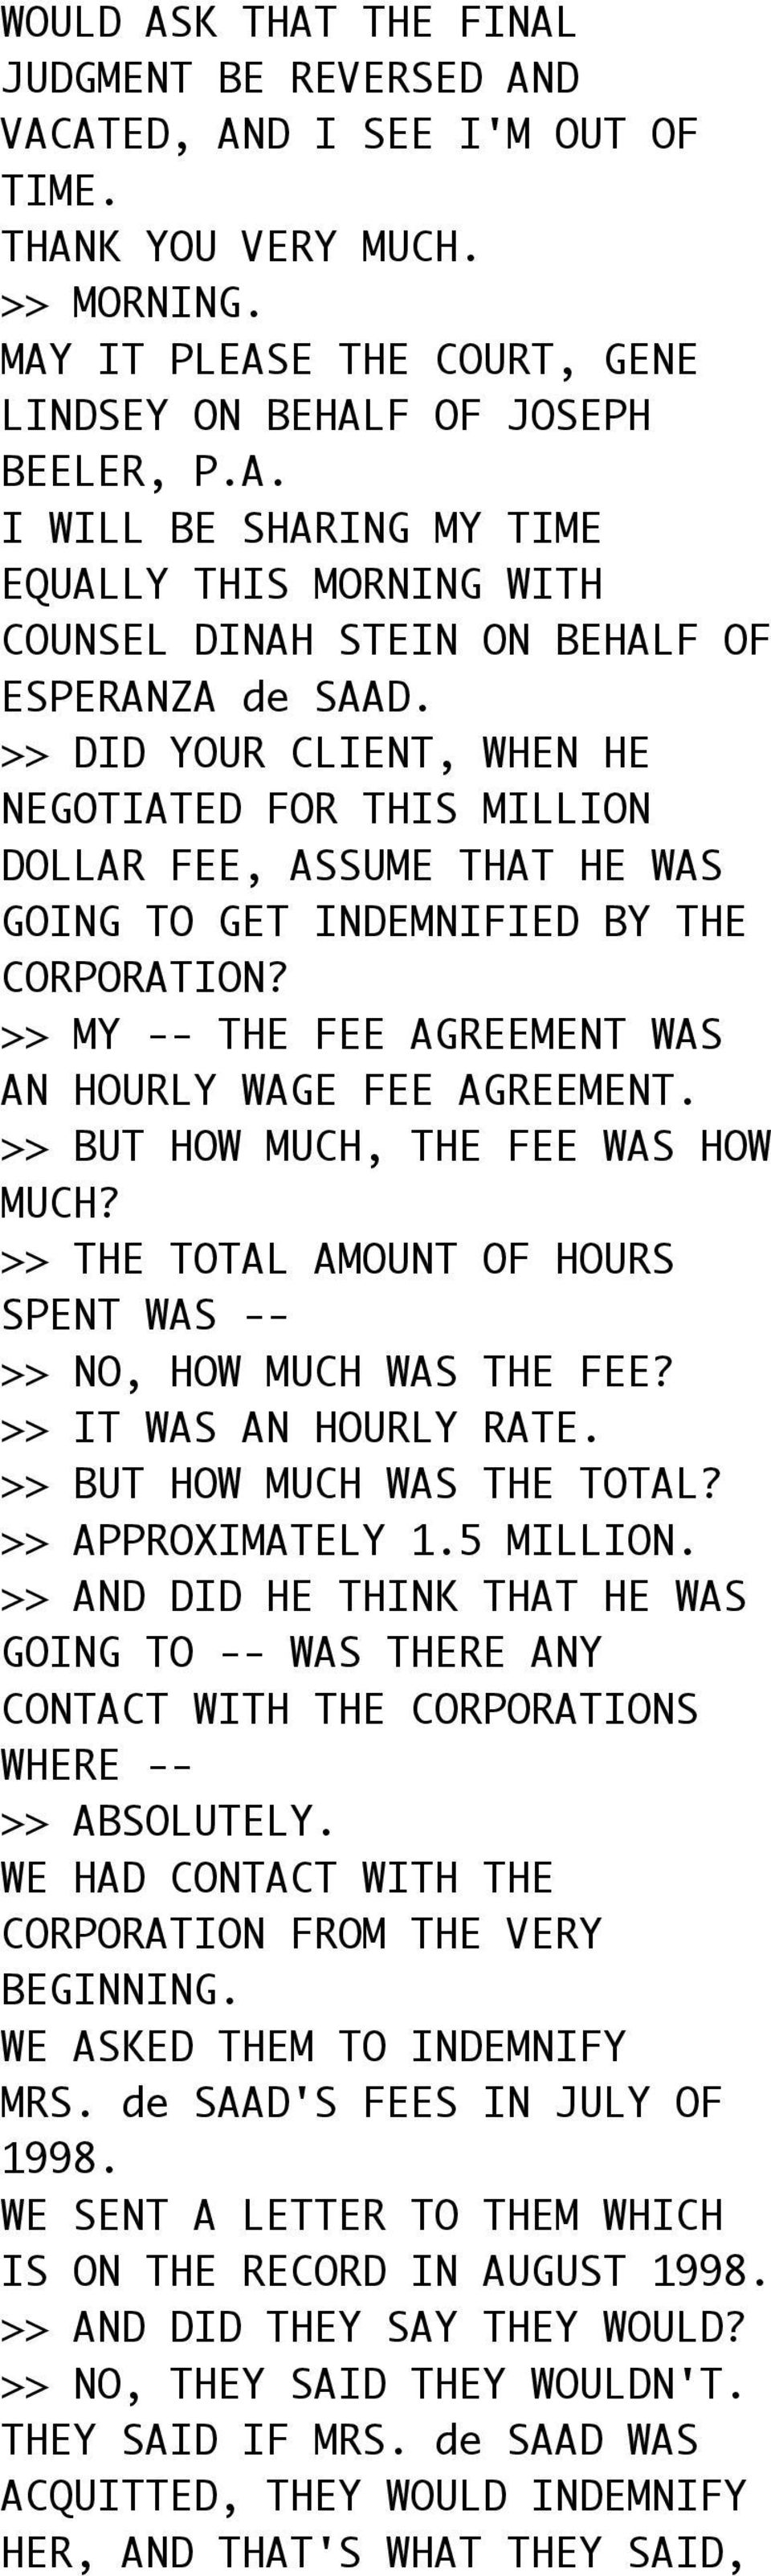 >> BUT HOW MUCH, THE FEE WAS HOW MUCH? >> THE TOTAL AMOUNT OF HOURS SPENT WAS -- >> NO, HOW MUCH WAS THE FEE? >> IT WAS AN HOURLY RATE. >> BUT HOW MUCH WAS THE TOTAL? >> APPROXIMATELY 1.5 MILLION.